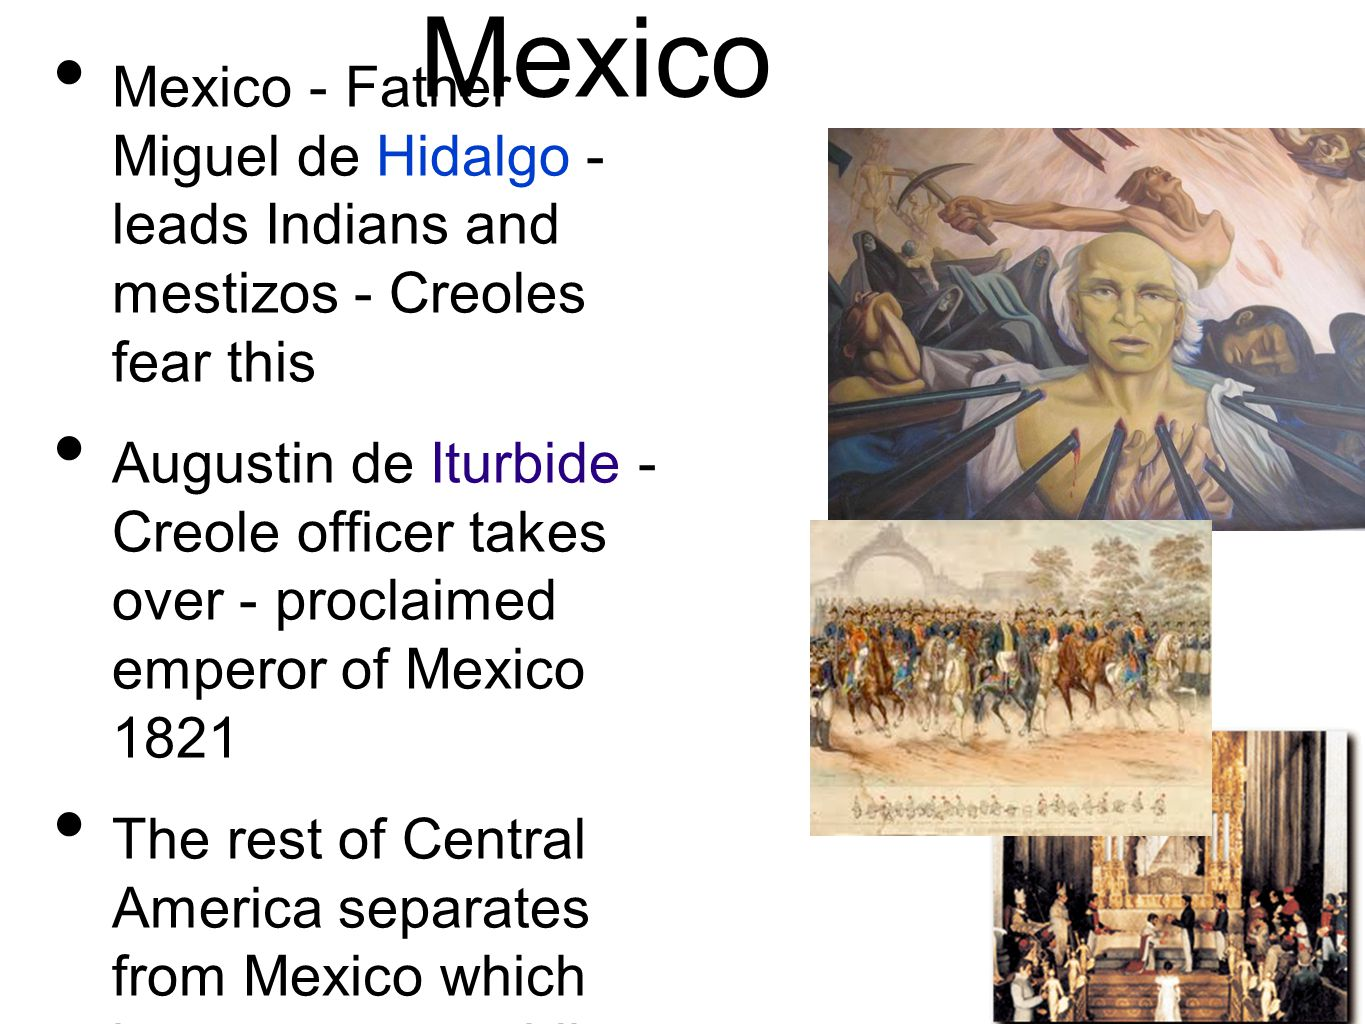 Mexico Mexico - Father Miguel de Hidalgo - leads Indians and mestizos - Creoles fear this Augustin de Iturbide - Creole officer takes over - proclaimed emperor of Mexico 1821 The rest of Central America separates from Mexico which becomes a republic.